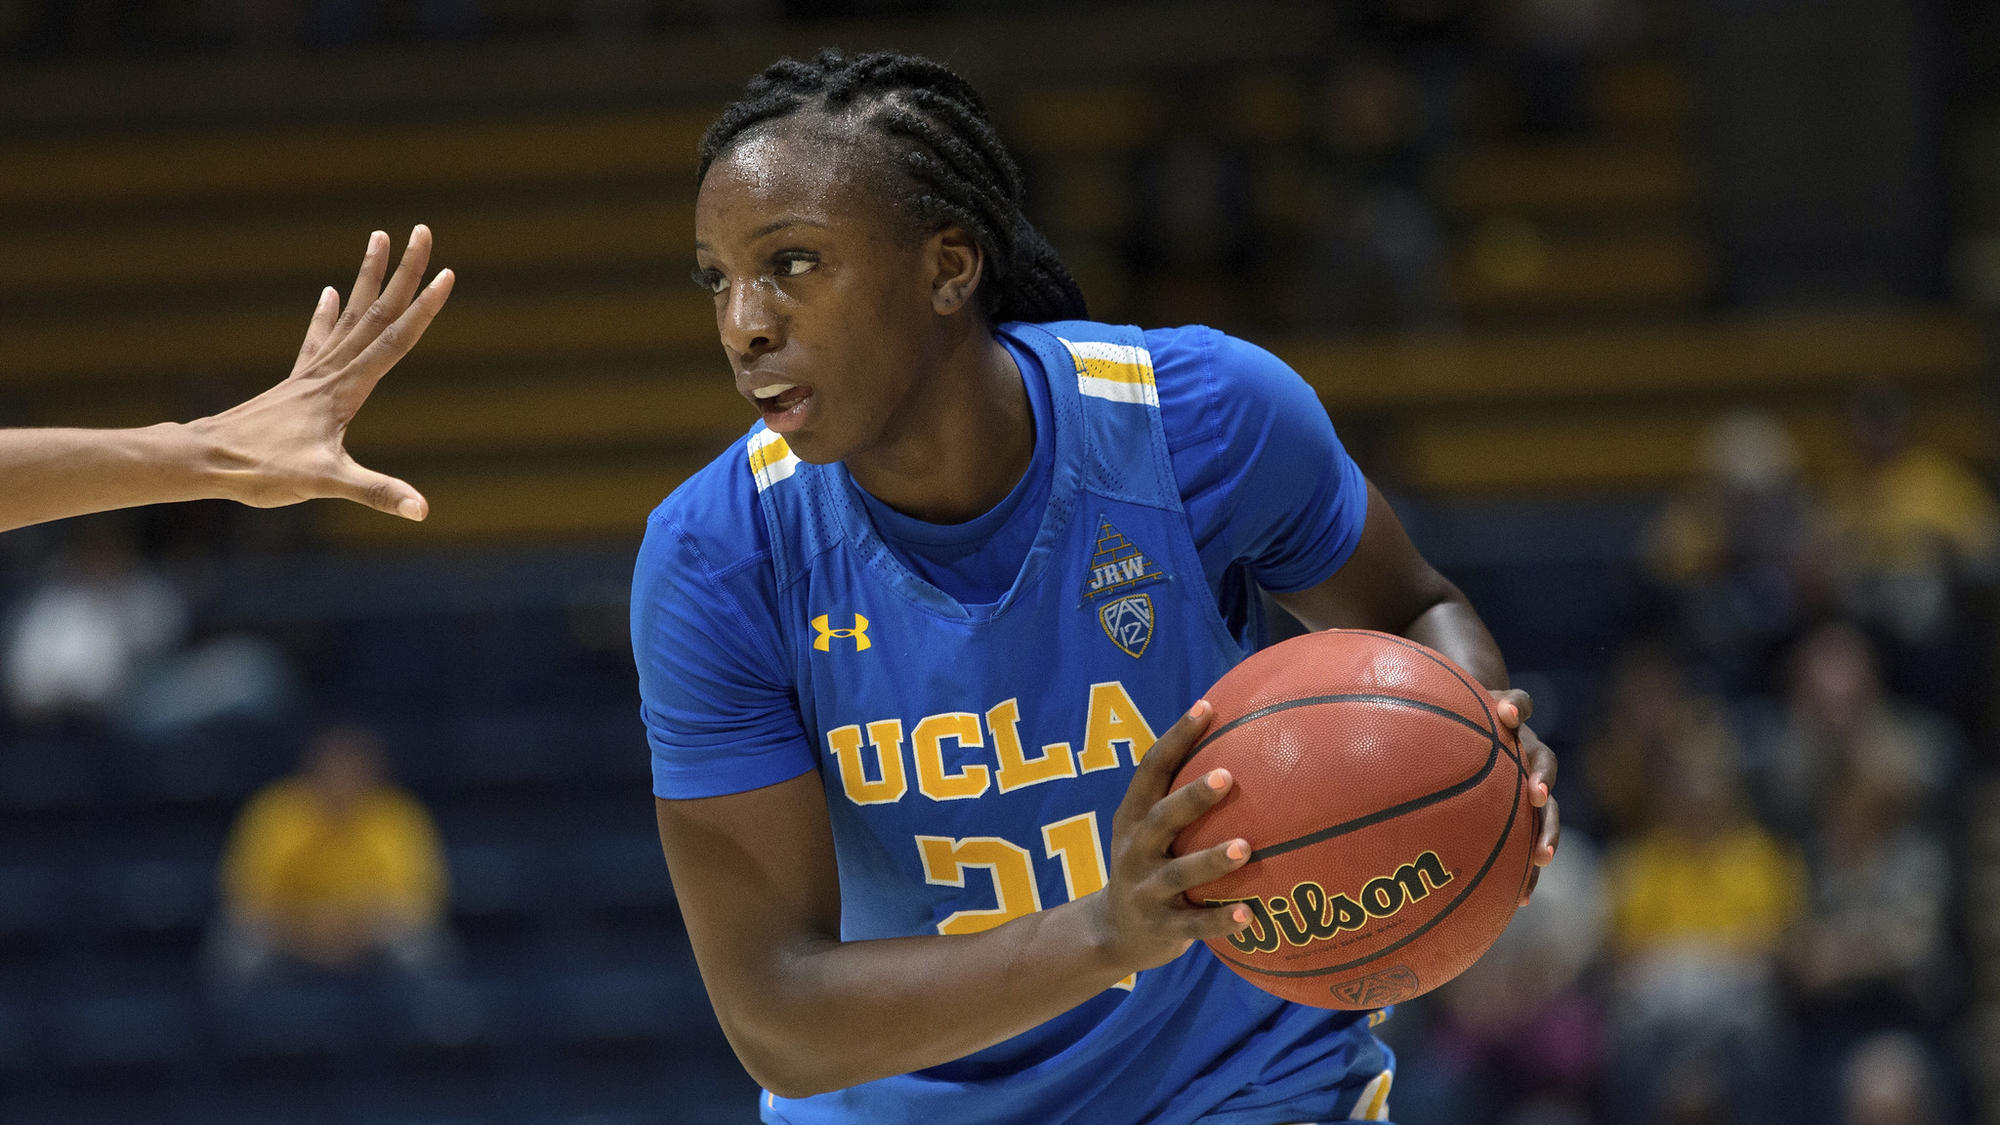 UCLA's Michaela Onyenwere is making all the right moves on eve of NCAA tournament